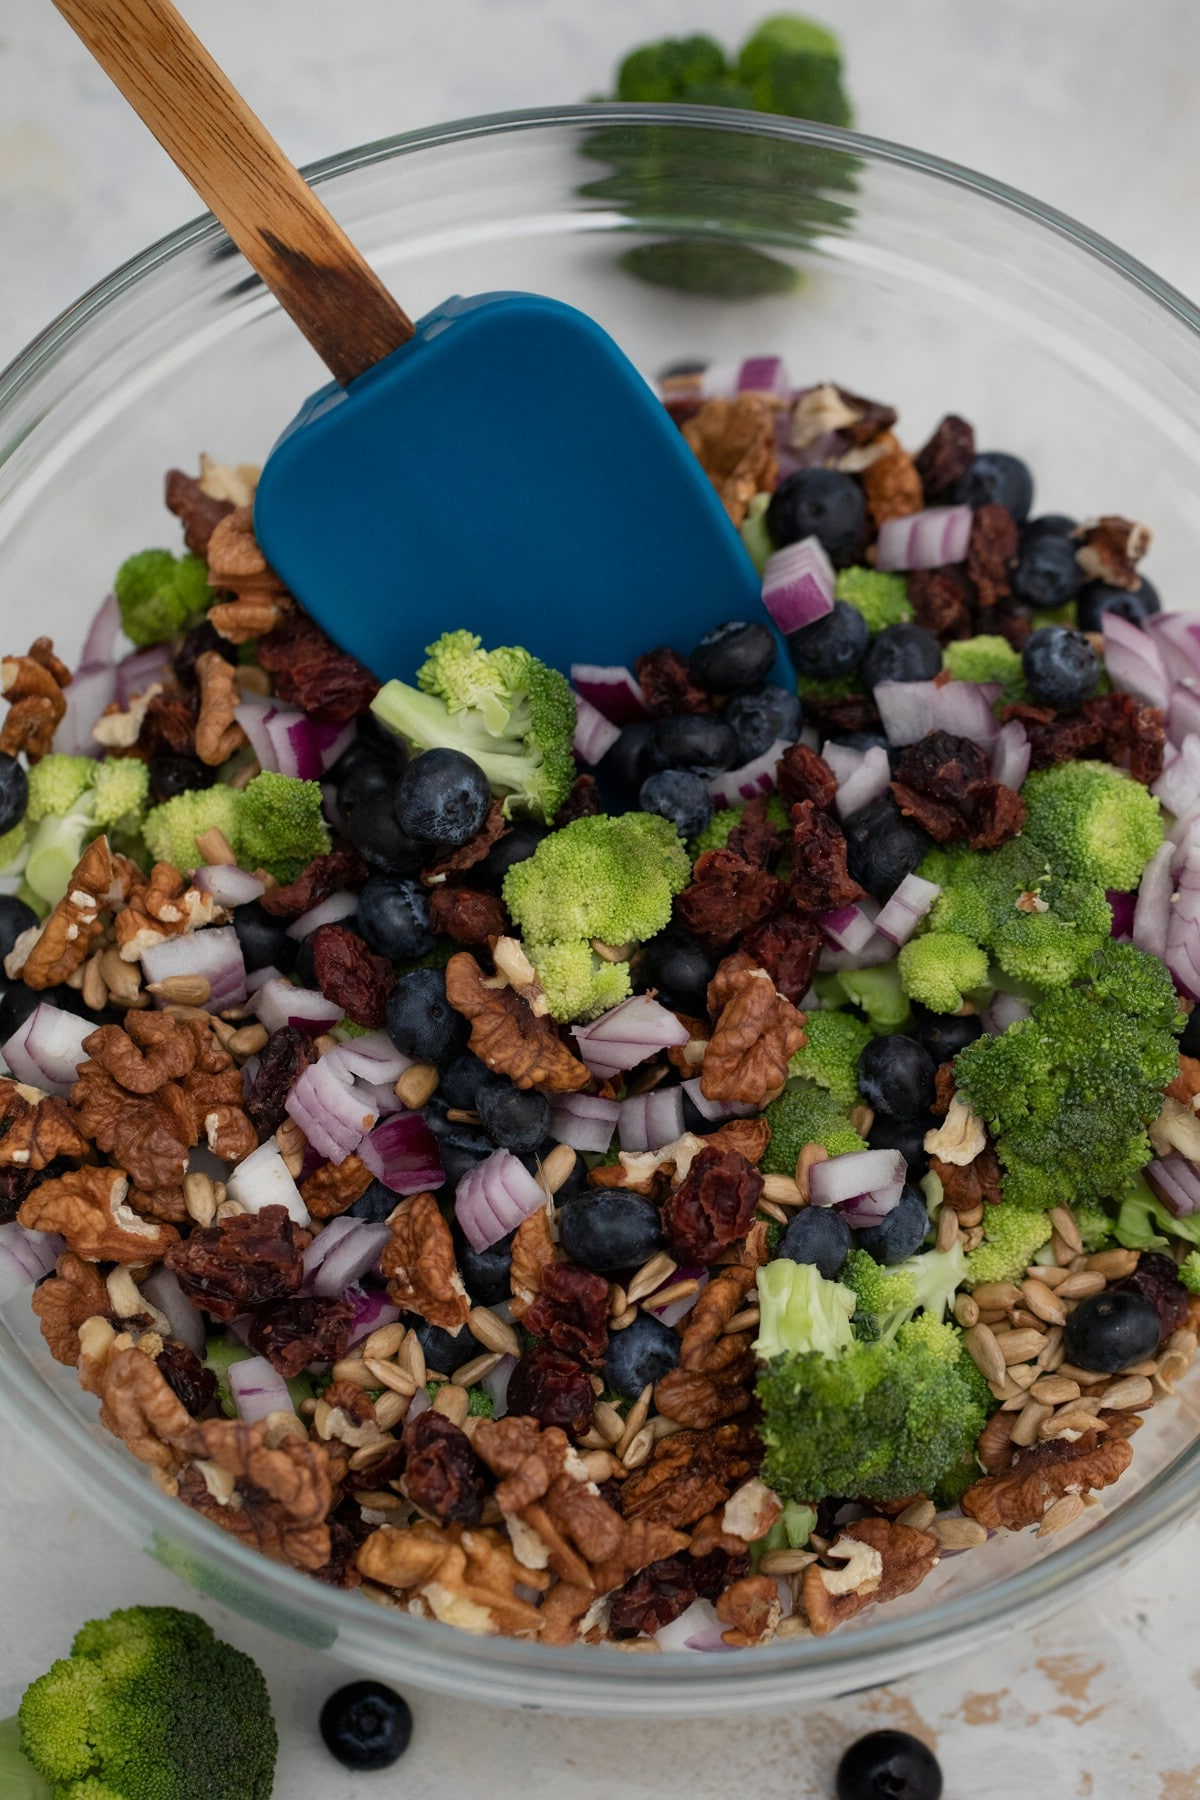 Stirring broccoli with berries and nuts